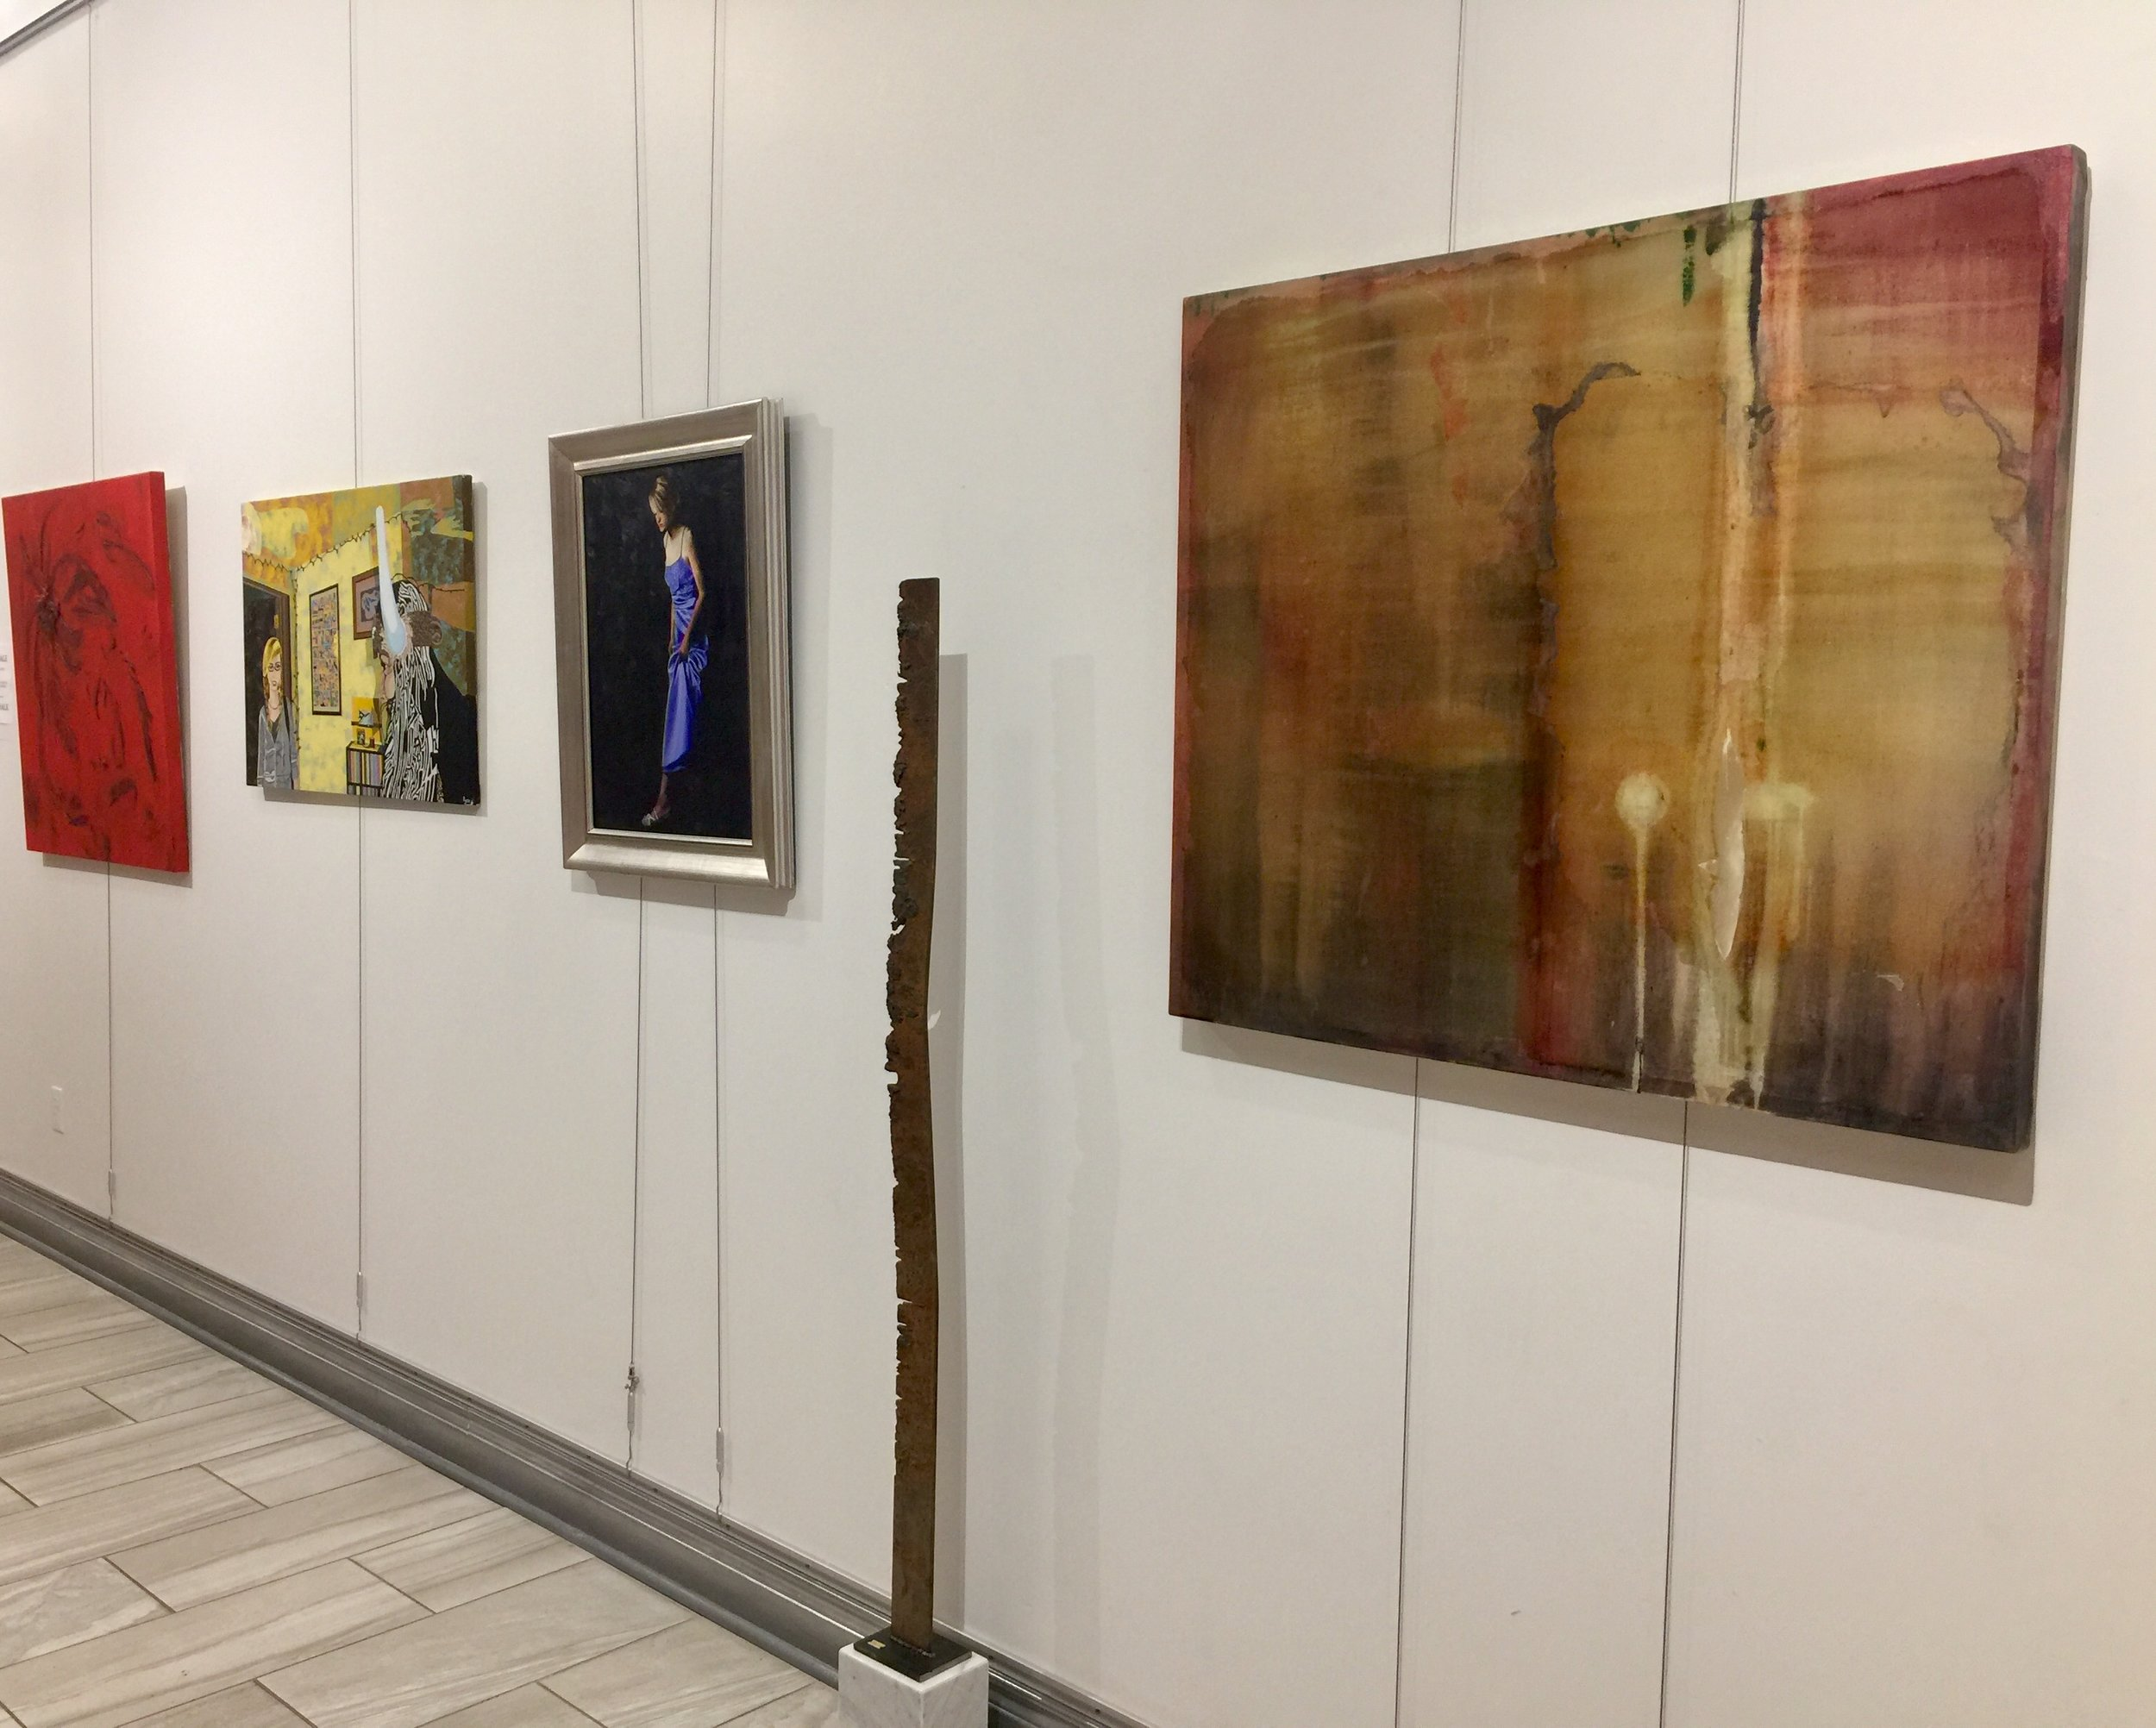 Painting by Teddi Fokas, Ryan Pack, and adrienne wright, sculpture by Michael Hanes